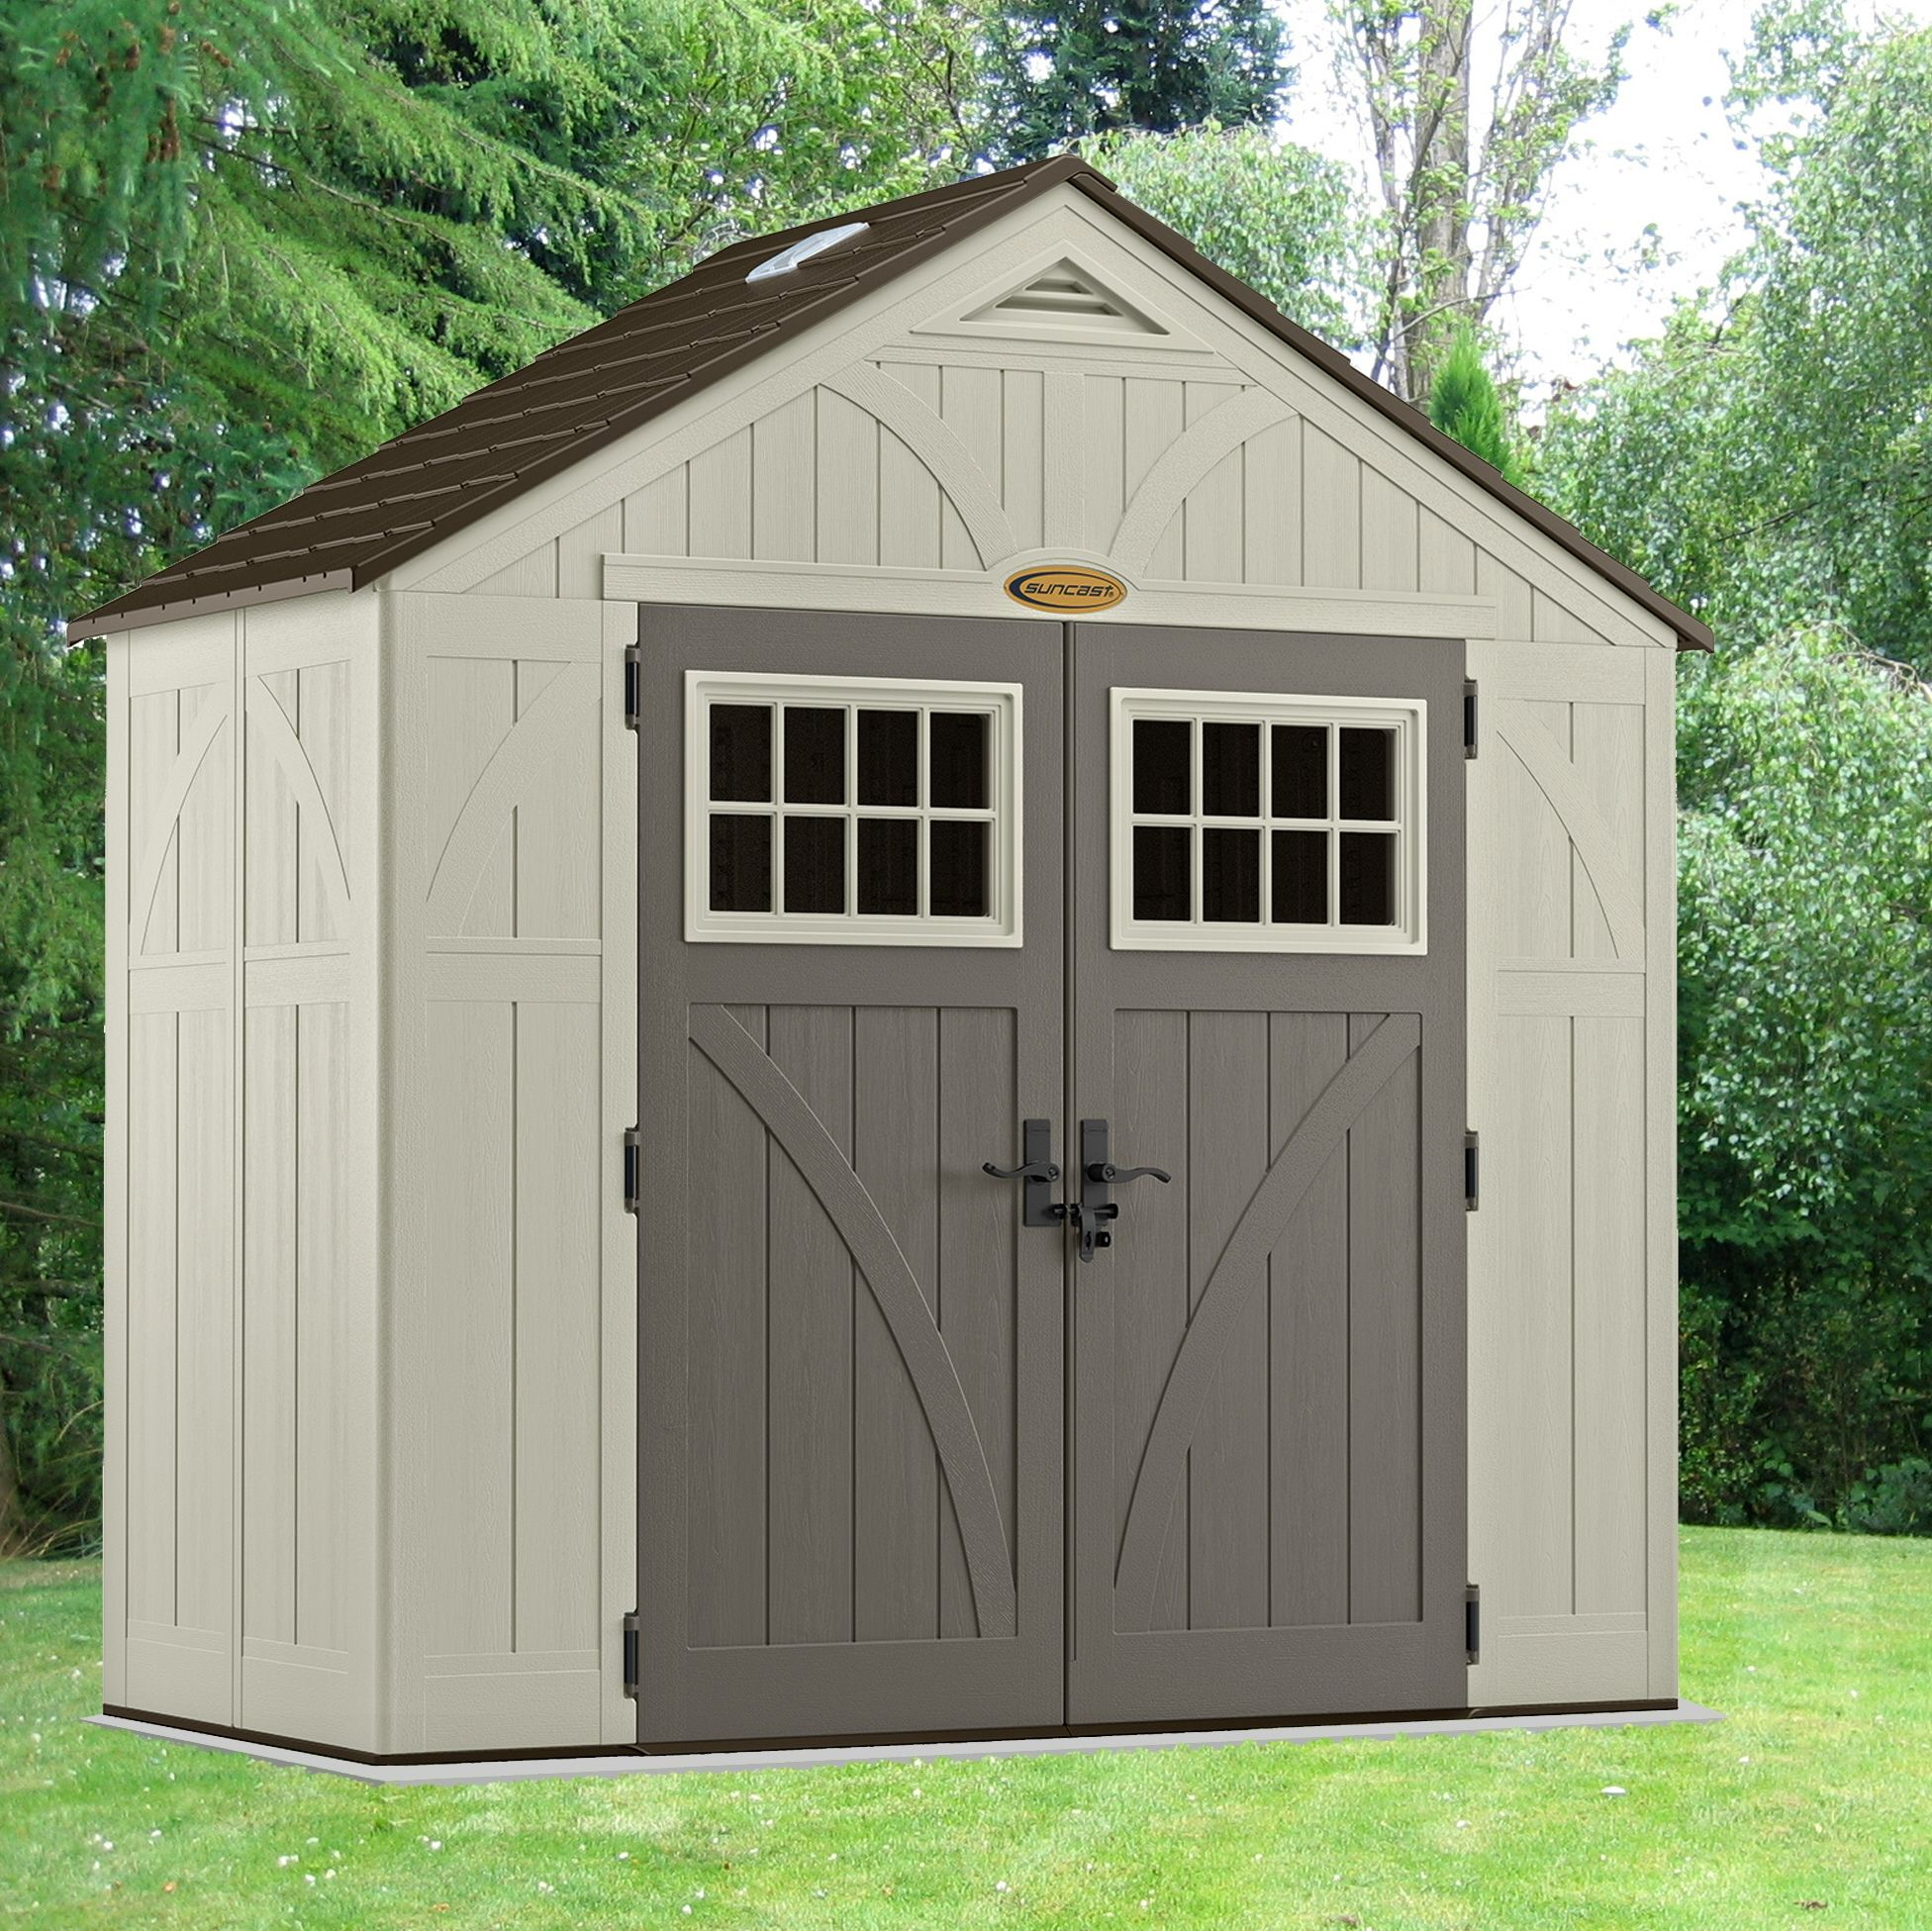 Suncast Tremont 8 x 4 ft Shed Shed, Apex roof, Garden